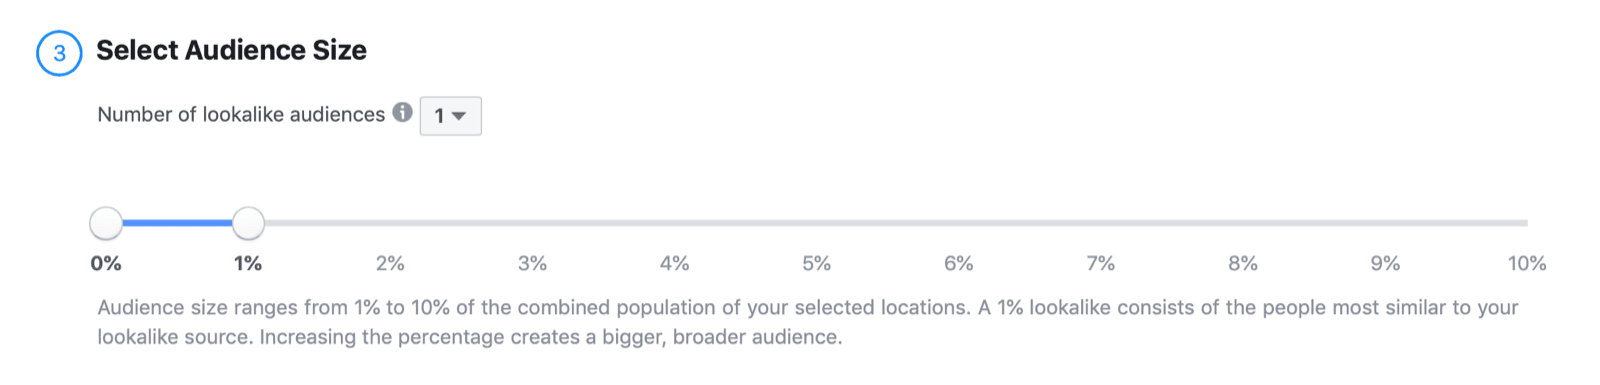 Select Audience Size